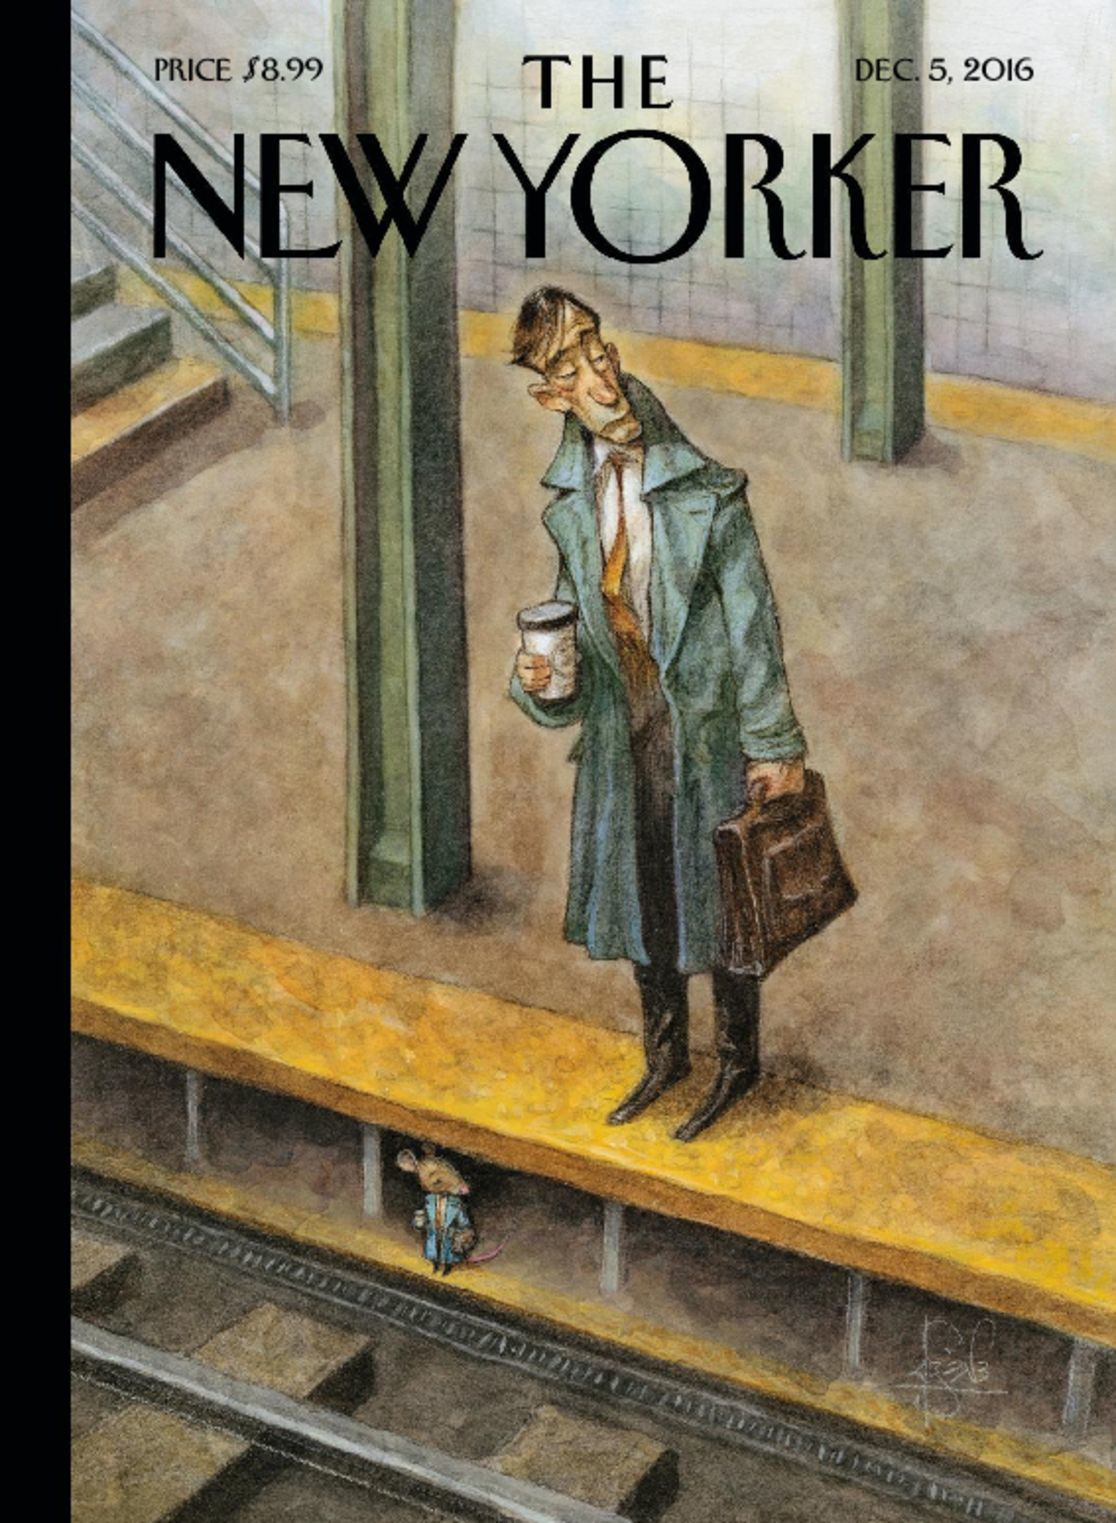 New yorker magazine subscribe to the new yorker discountmags com